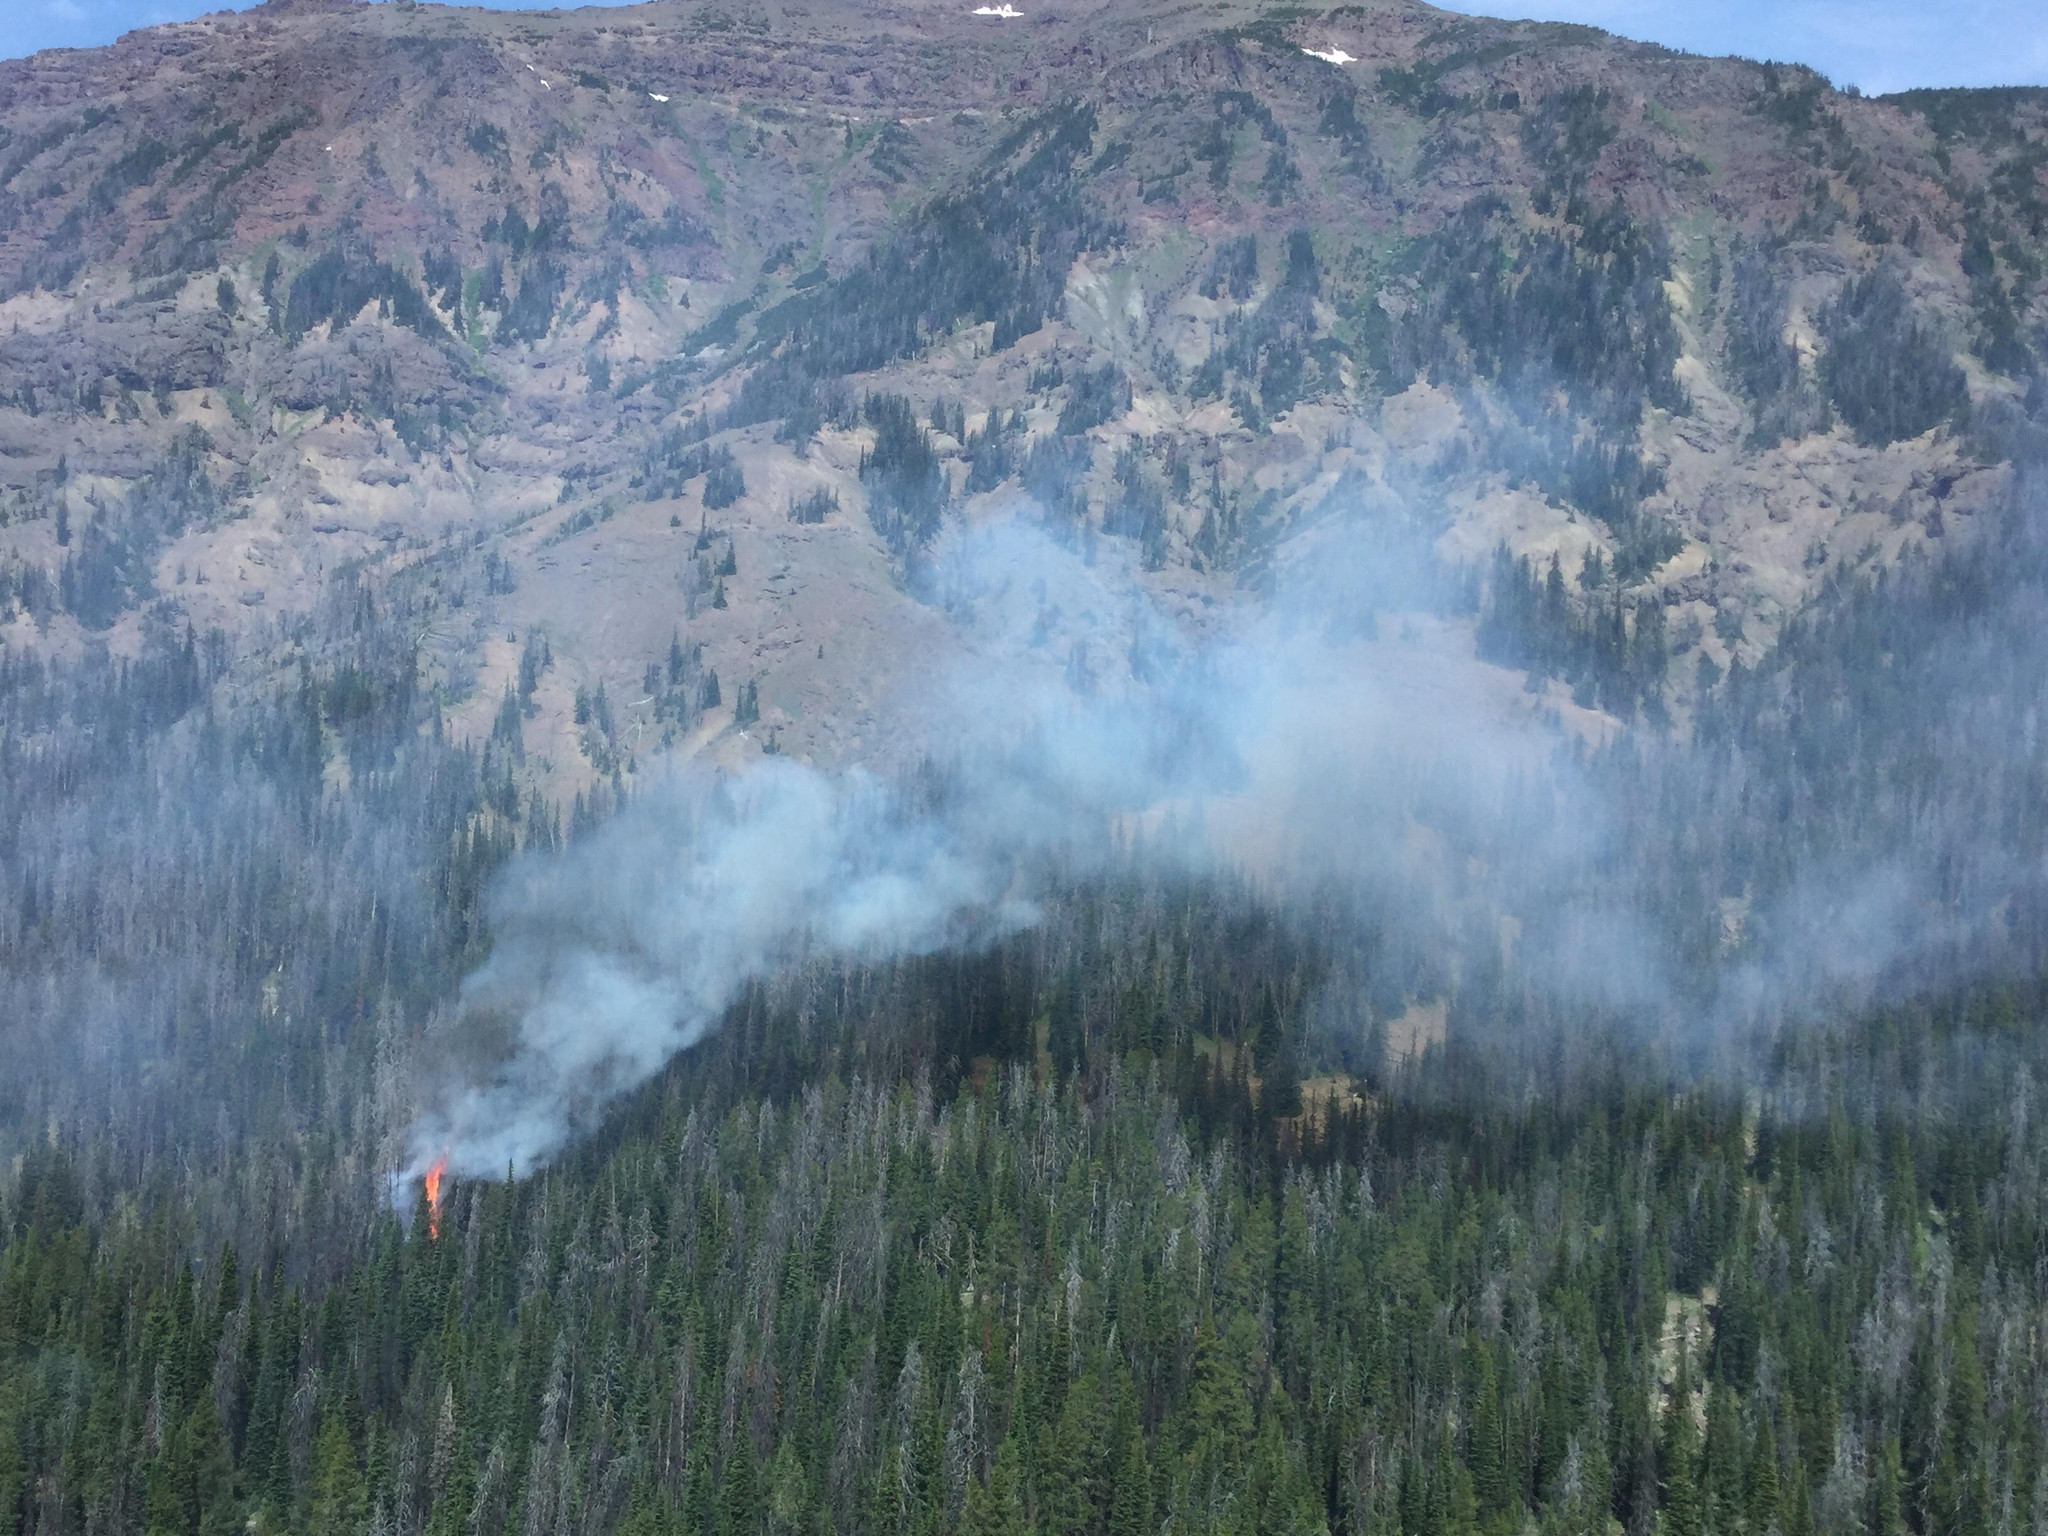 flames from a small wildfire in mountainous terrain